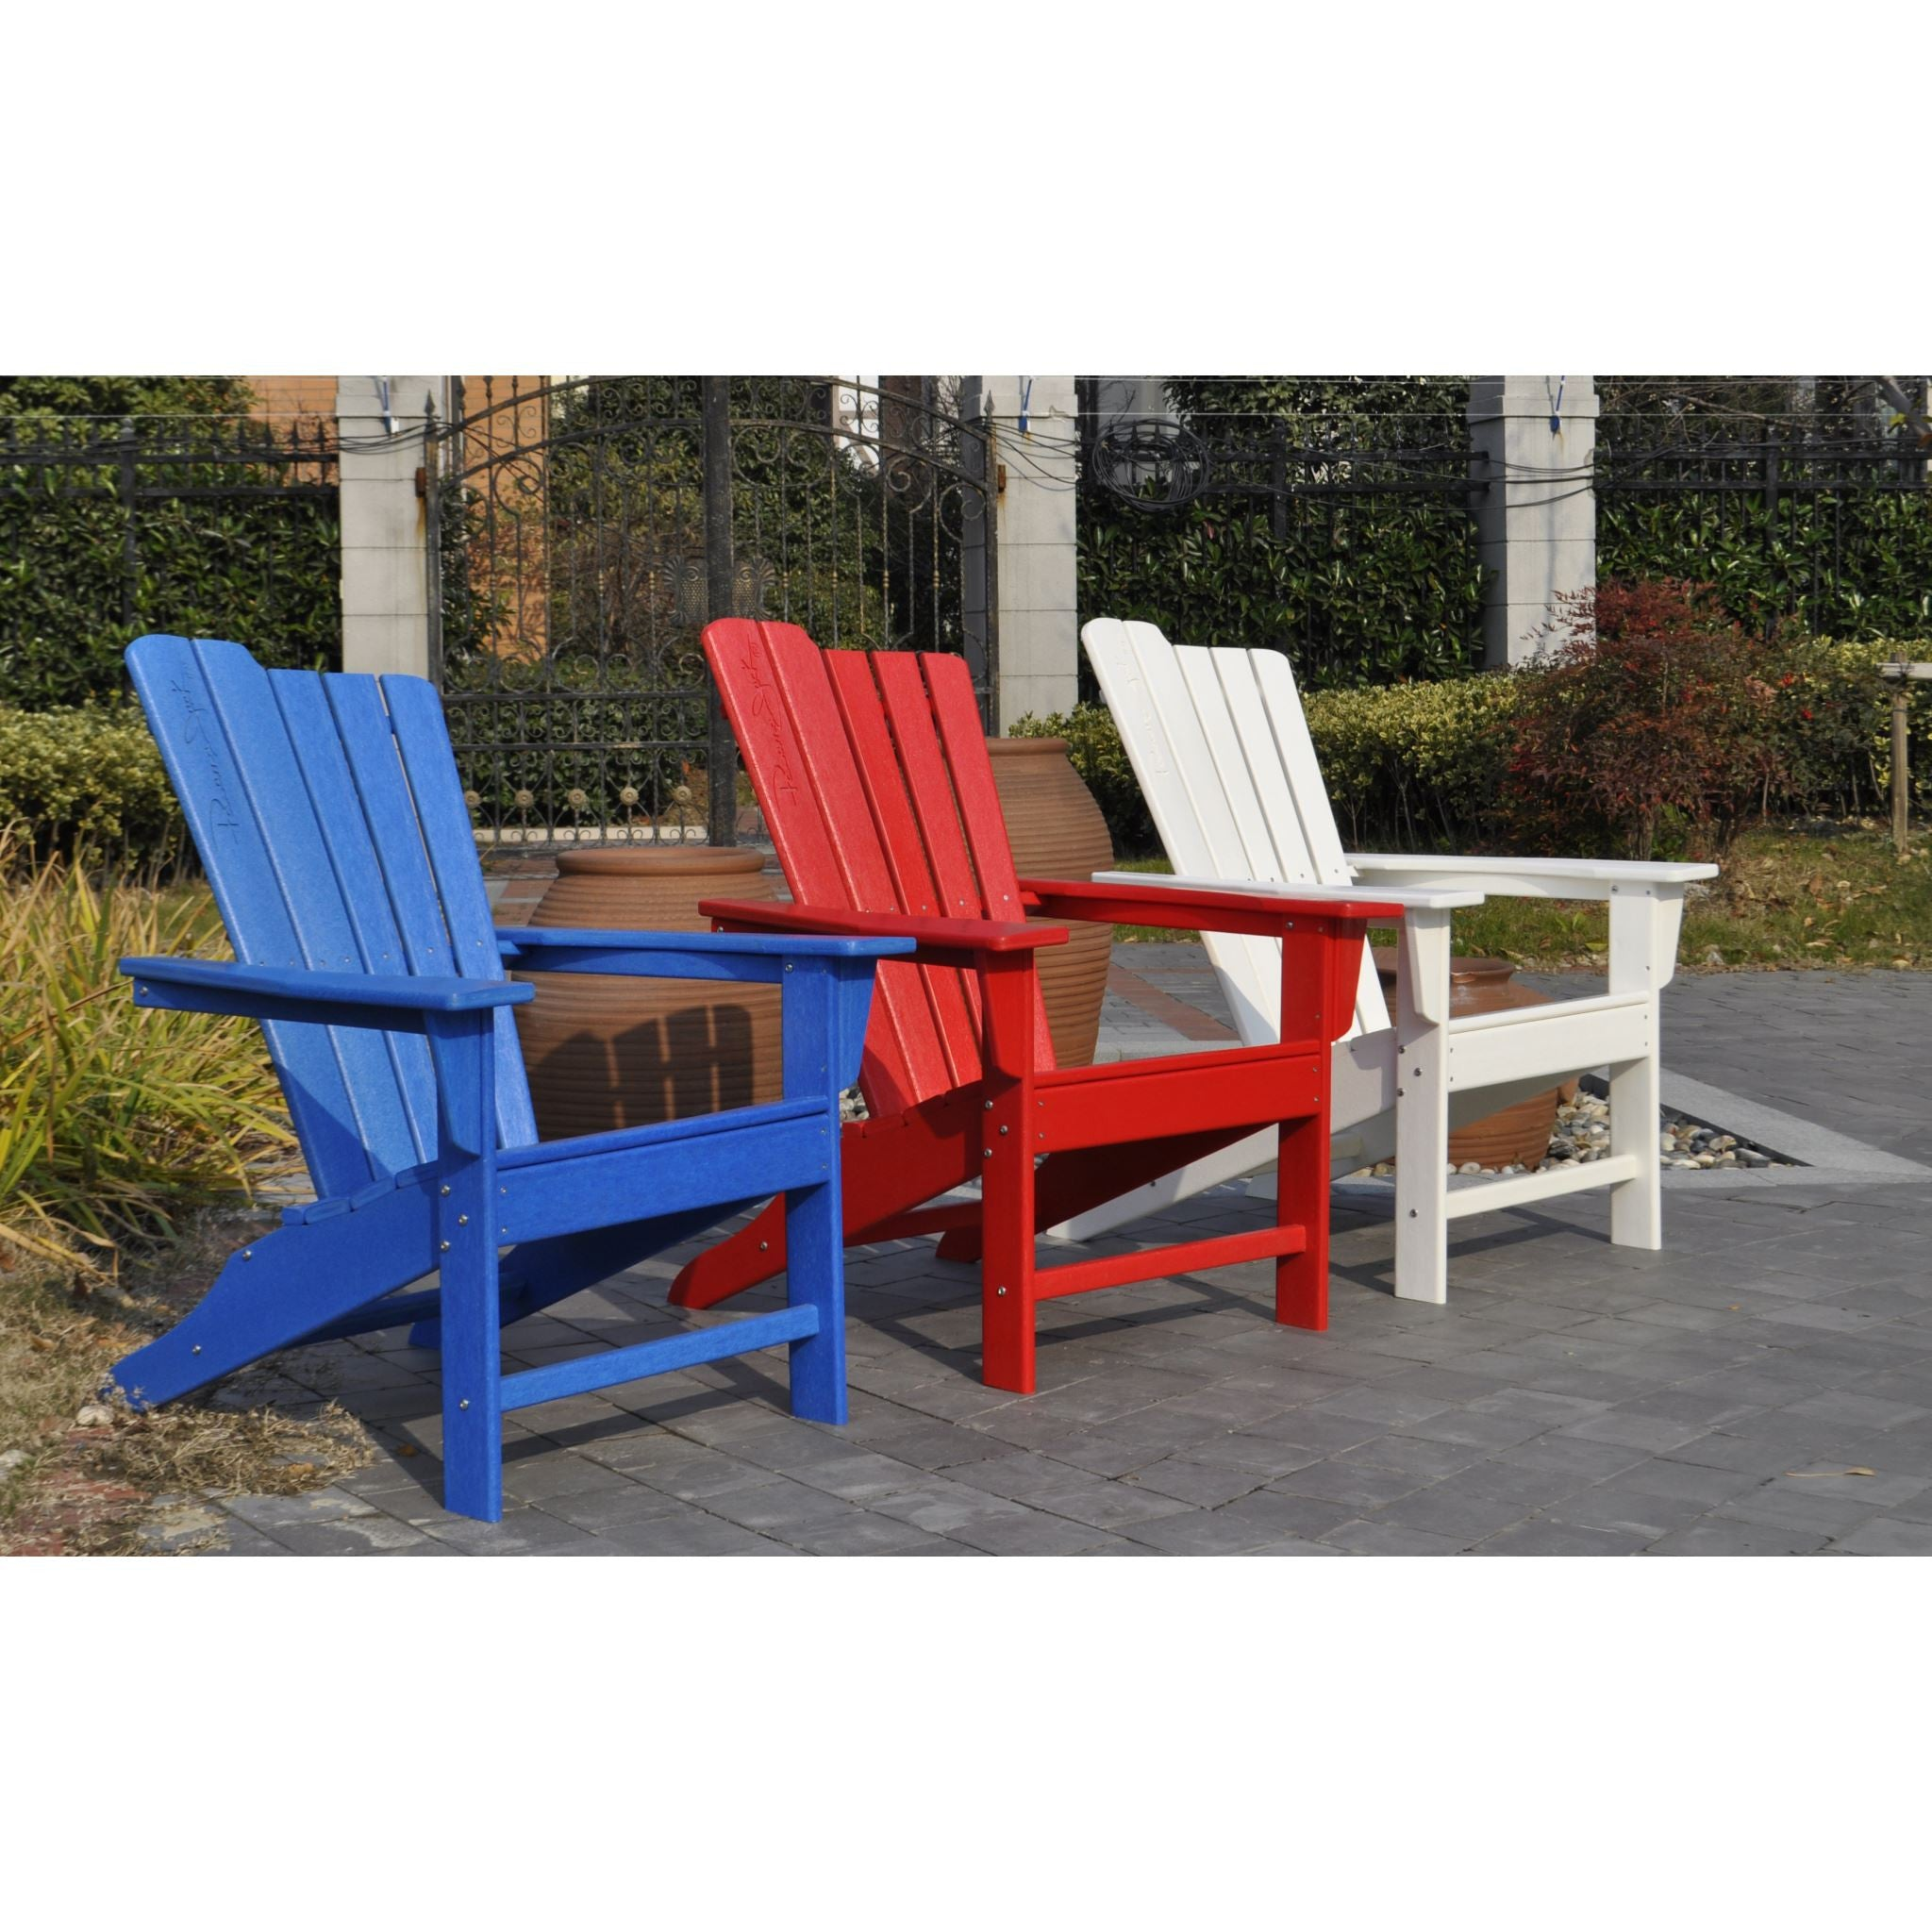 Panama Jack Blue Outdoor Adirondack Chair and Ottoman Set PJO 4001